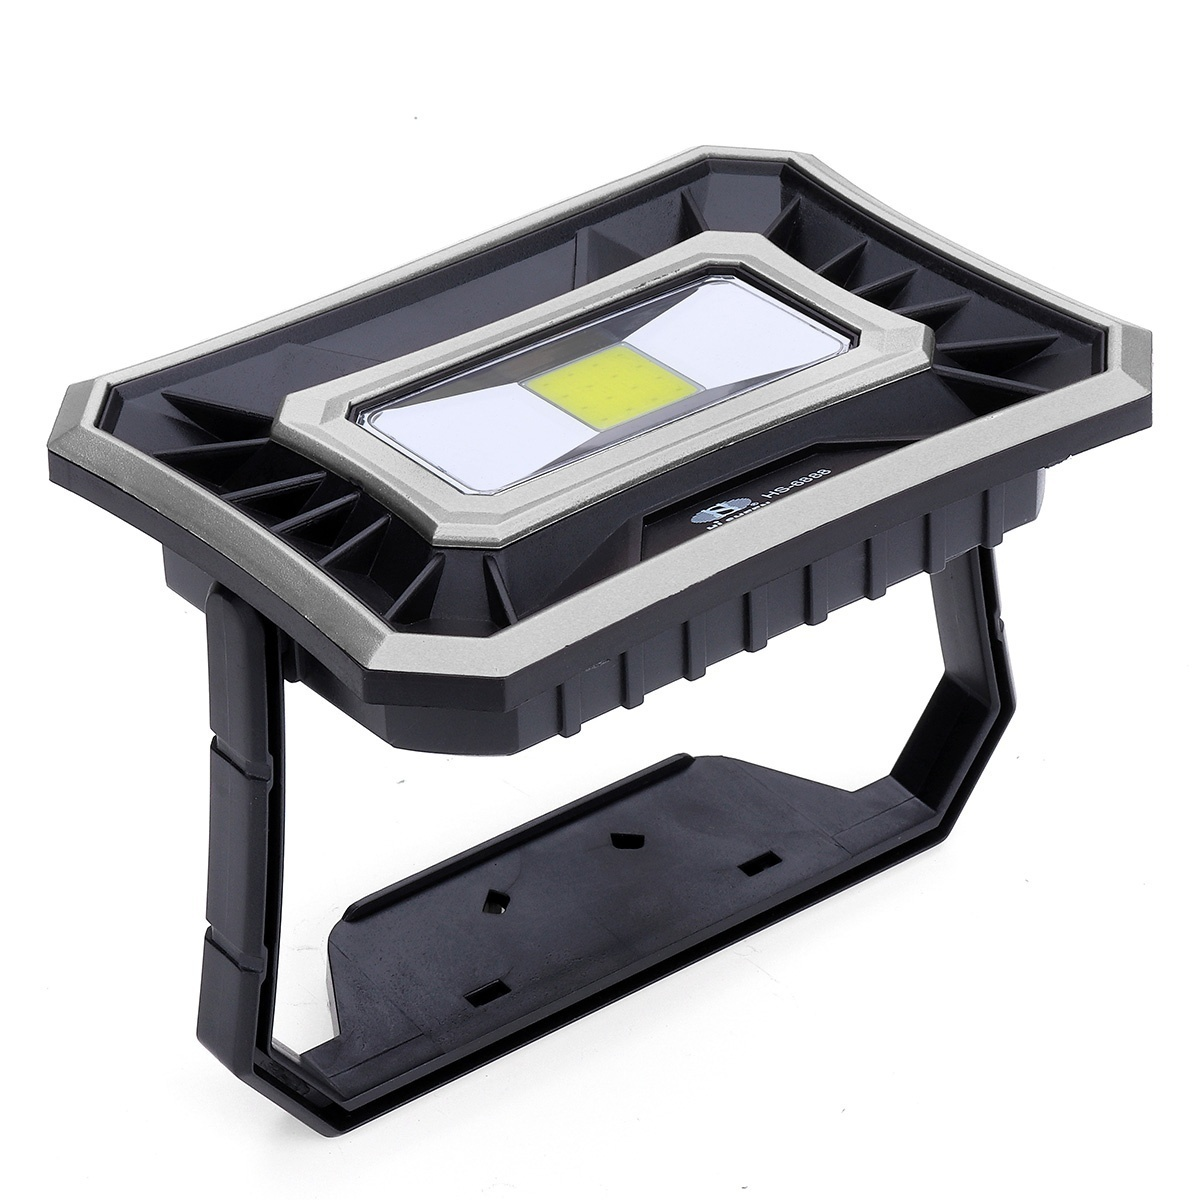 Rechargeable Work Light 50W 1000LM USB Waterproof COB LED Worklight Flood Lamp Battery Powered 2 Lights Models Emergency Lights Outdoor Camping Lamp Strong Light - Low Light Portable